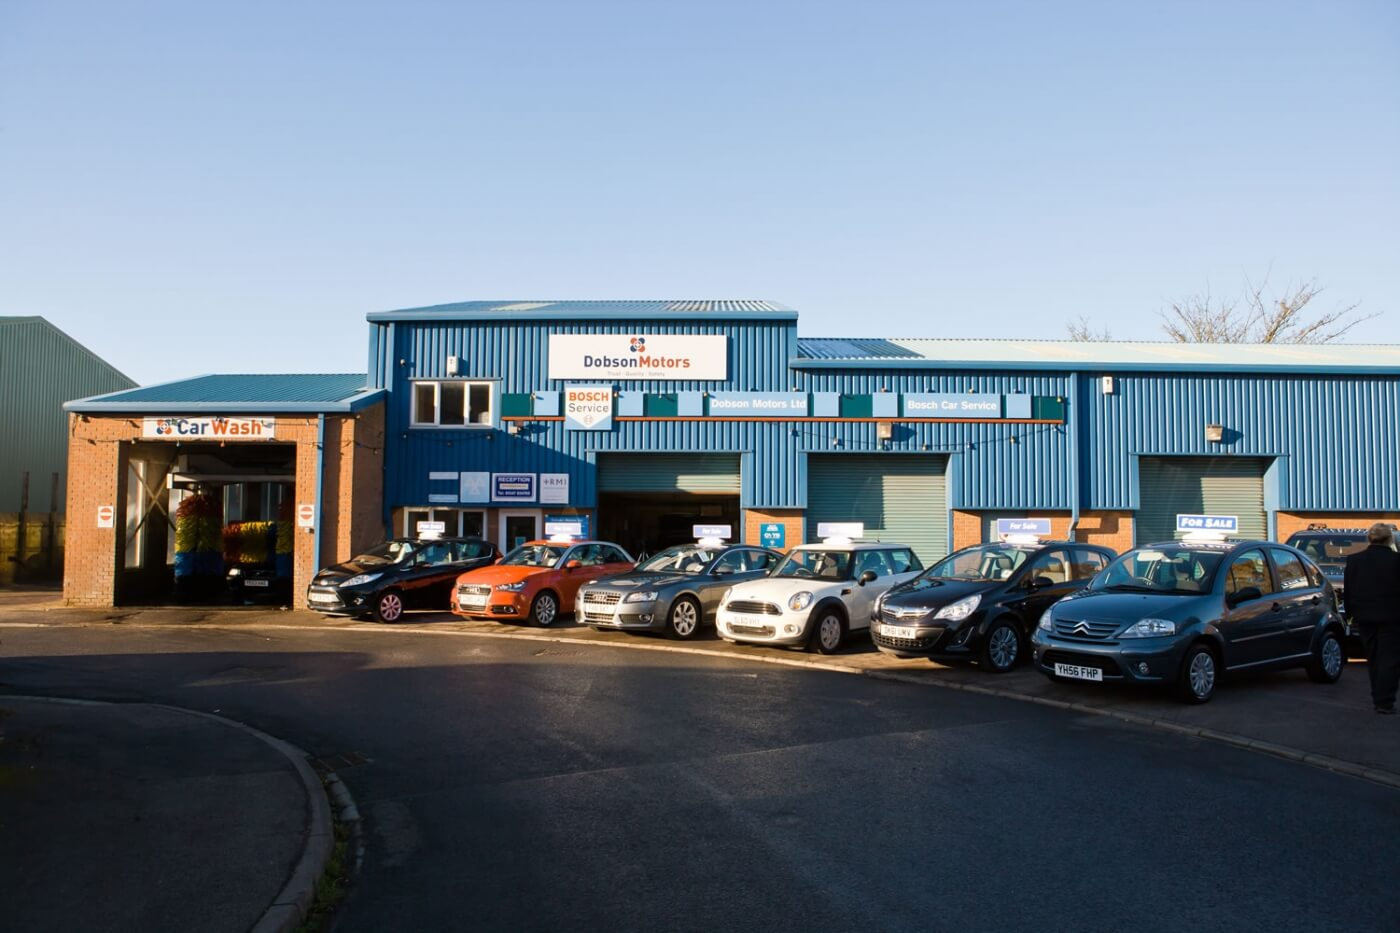 Dobson Motors About Us Gallery Image